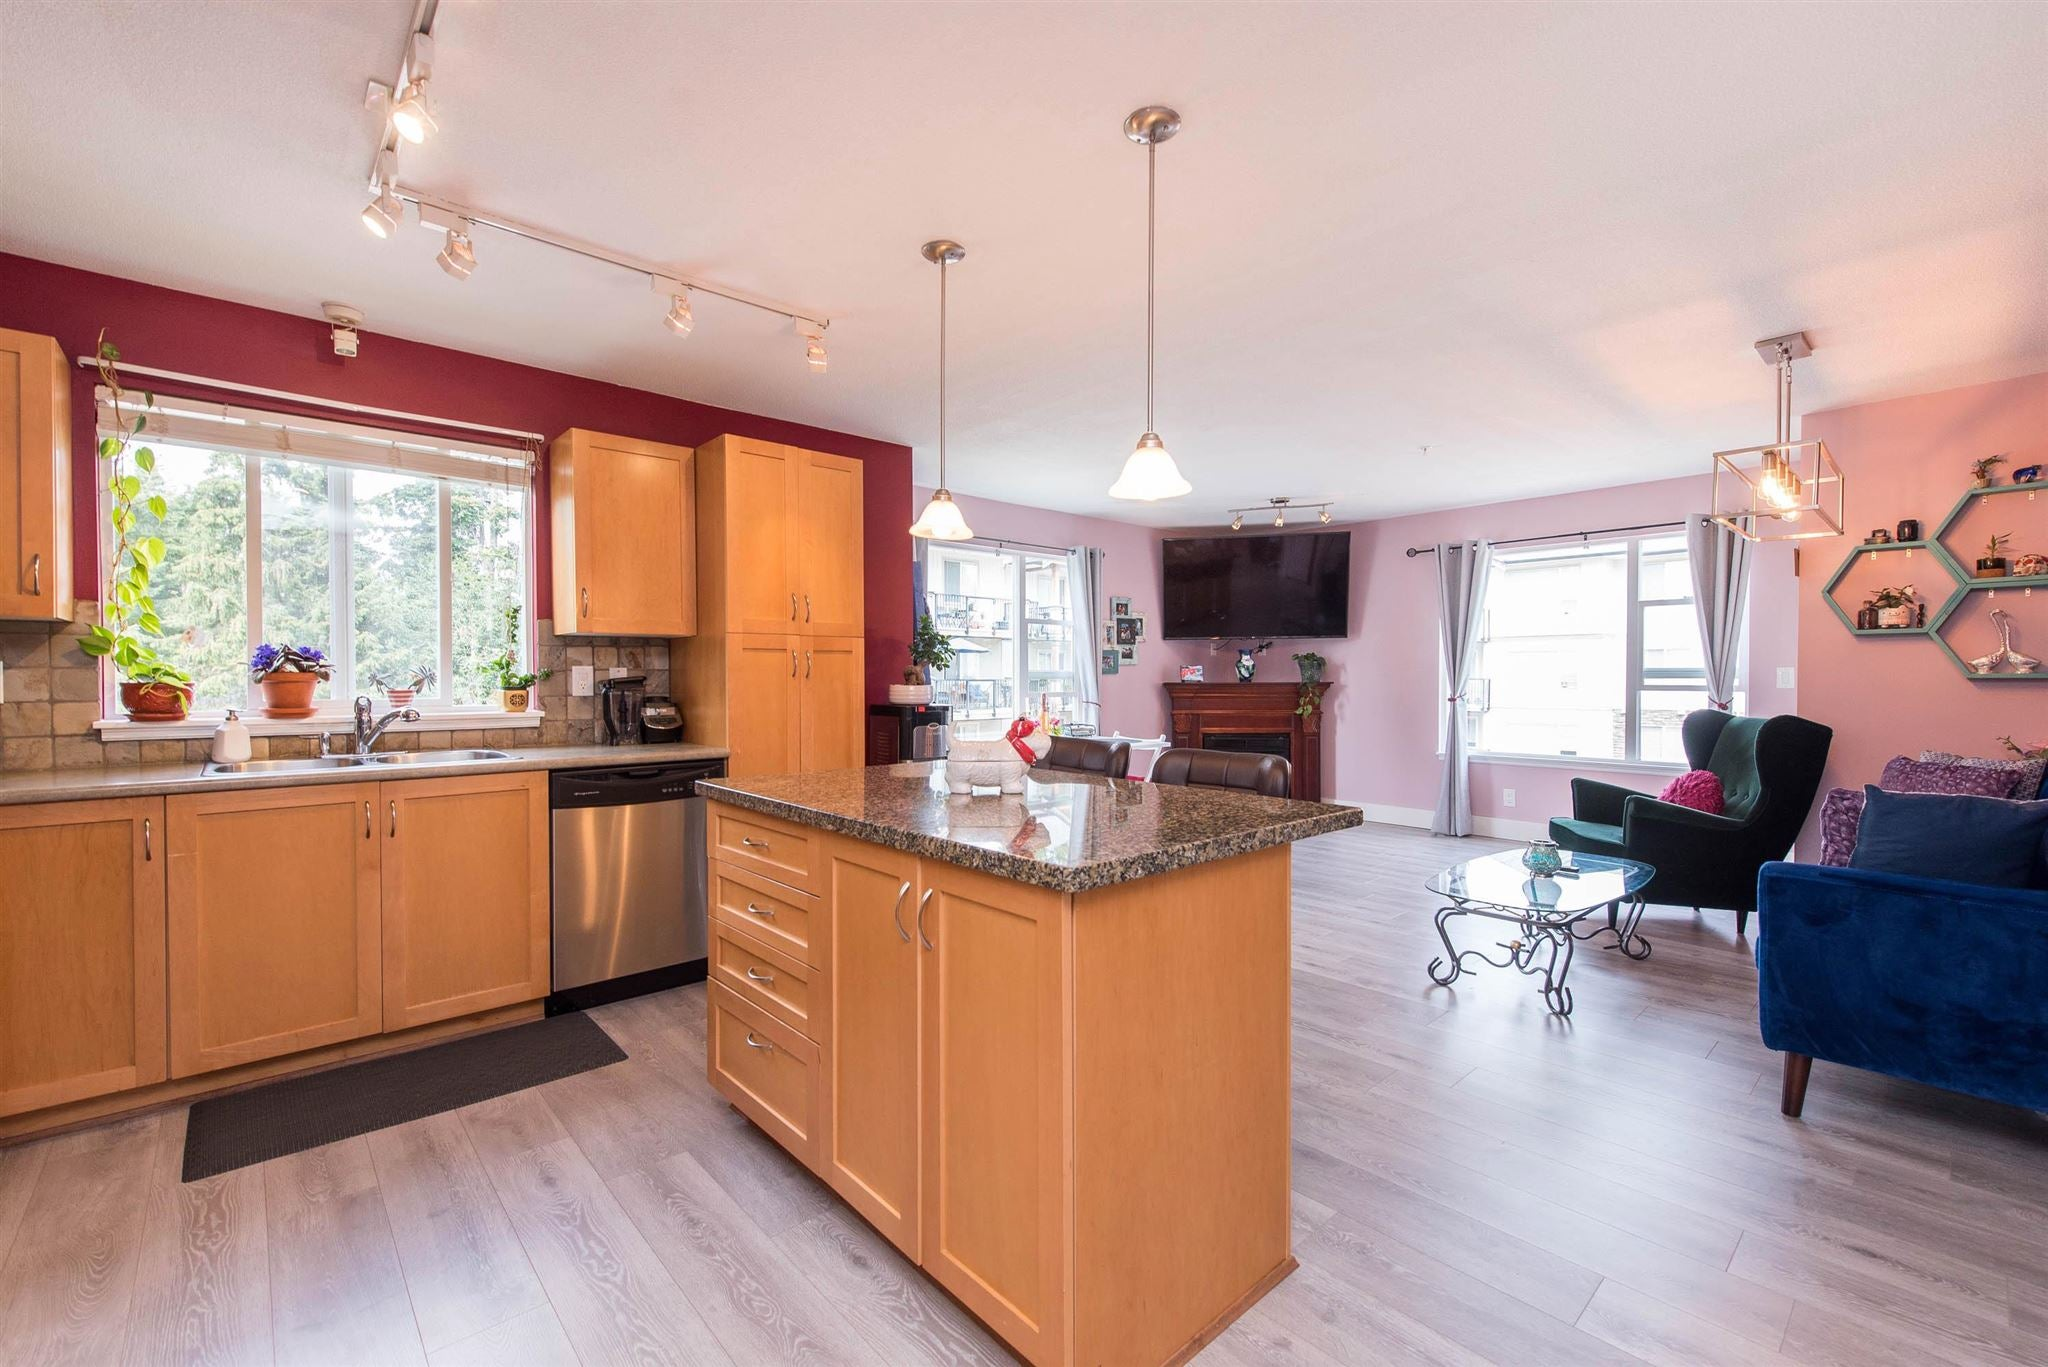 316 2955 DIAMOND CRESCENT - Abbotsford West Apartment/Condo for sale, 2 Bedrooms (R2600354) - #1